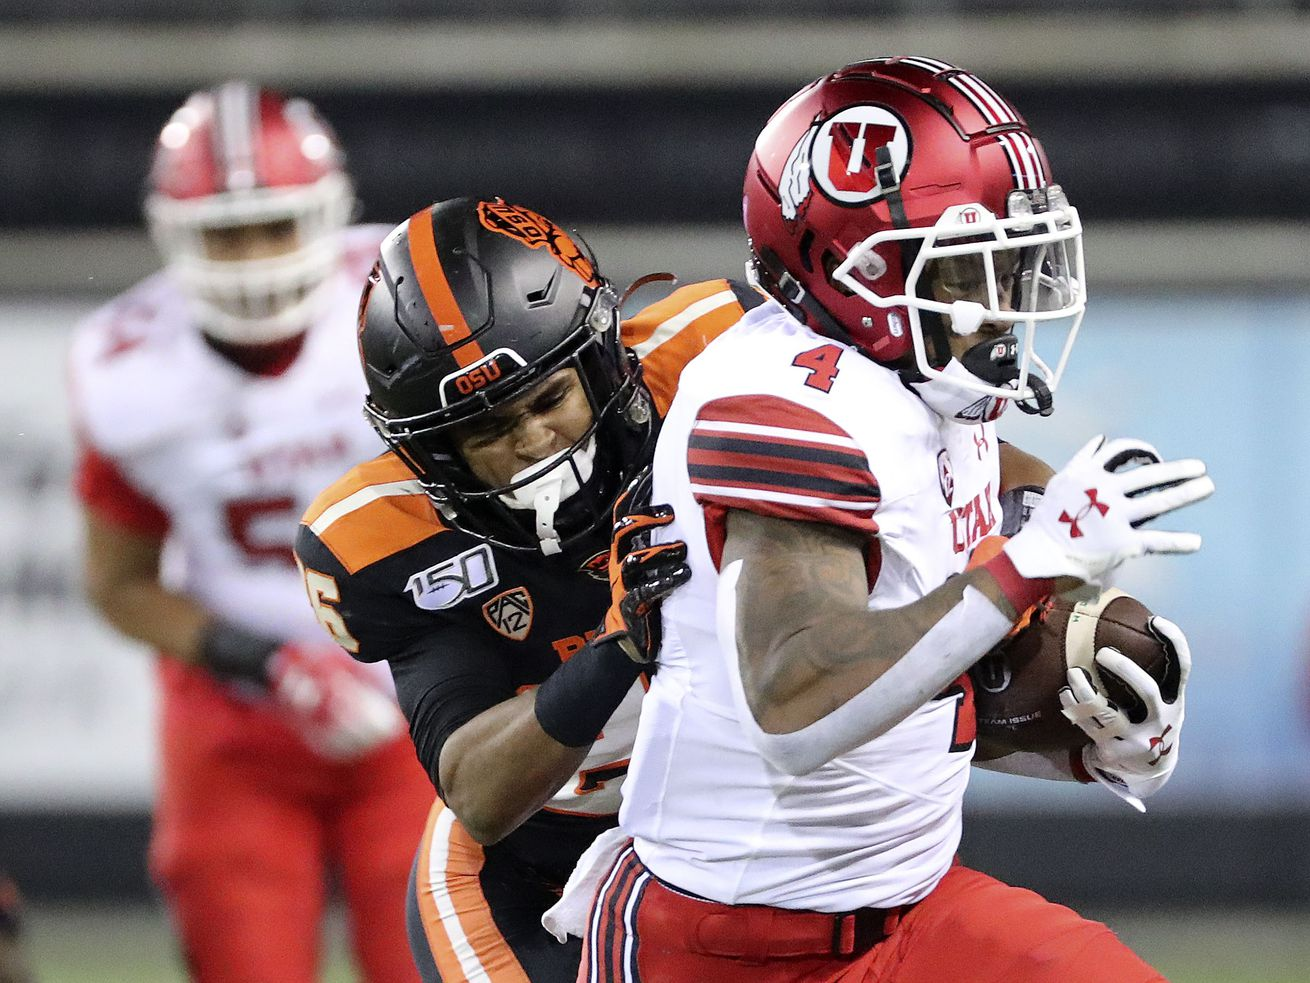 Utah Utes RB TJ Green announces plan to transfer